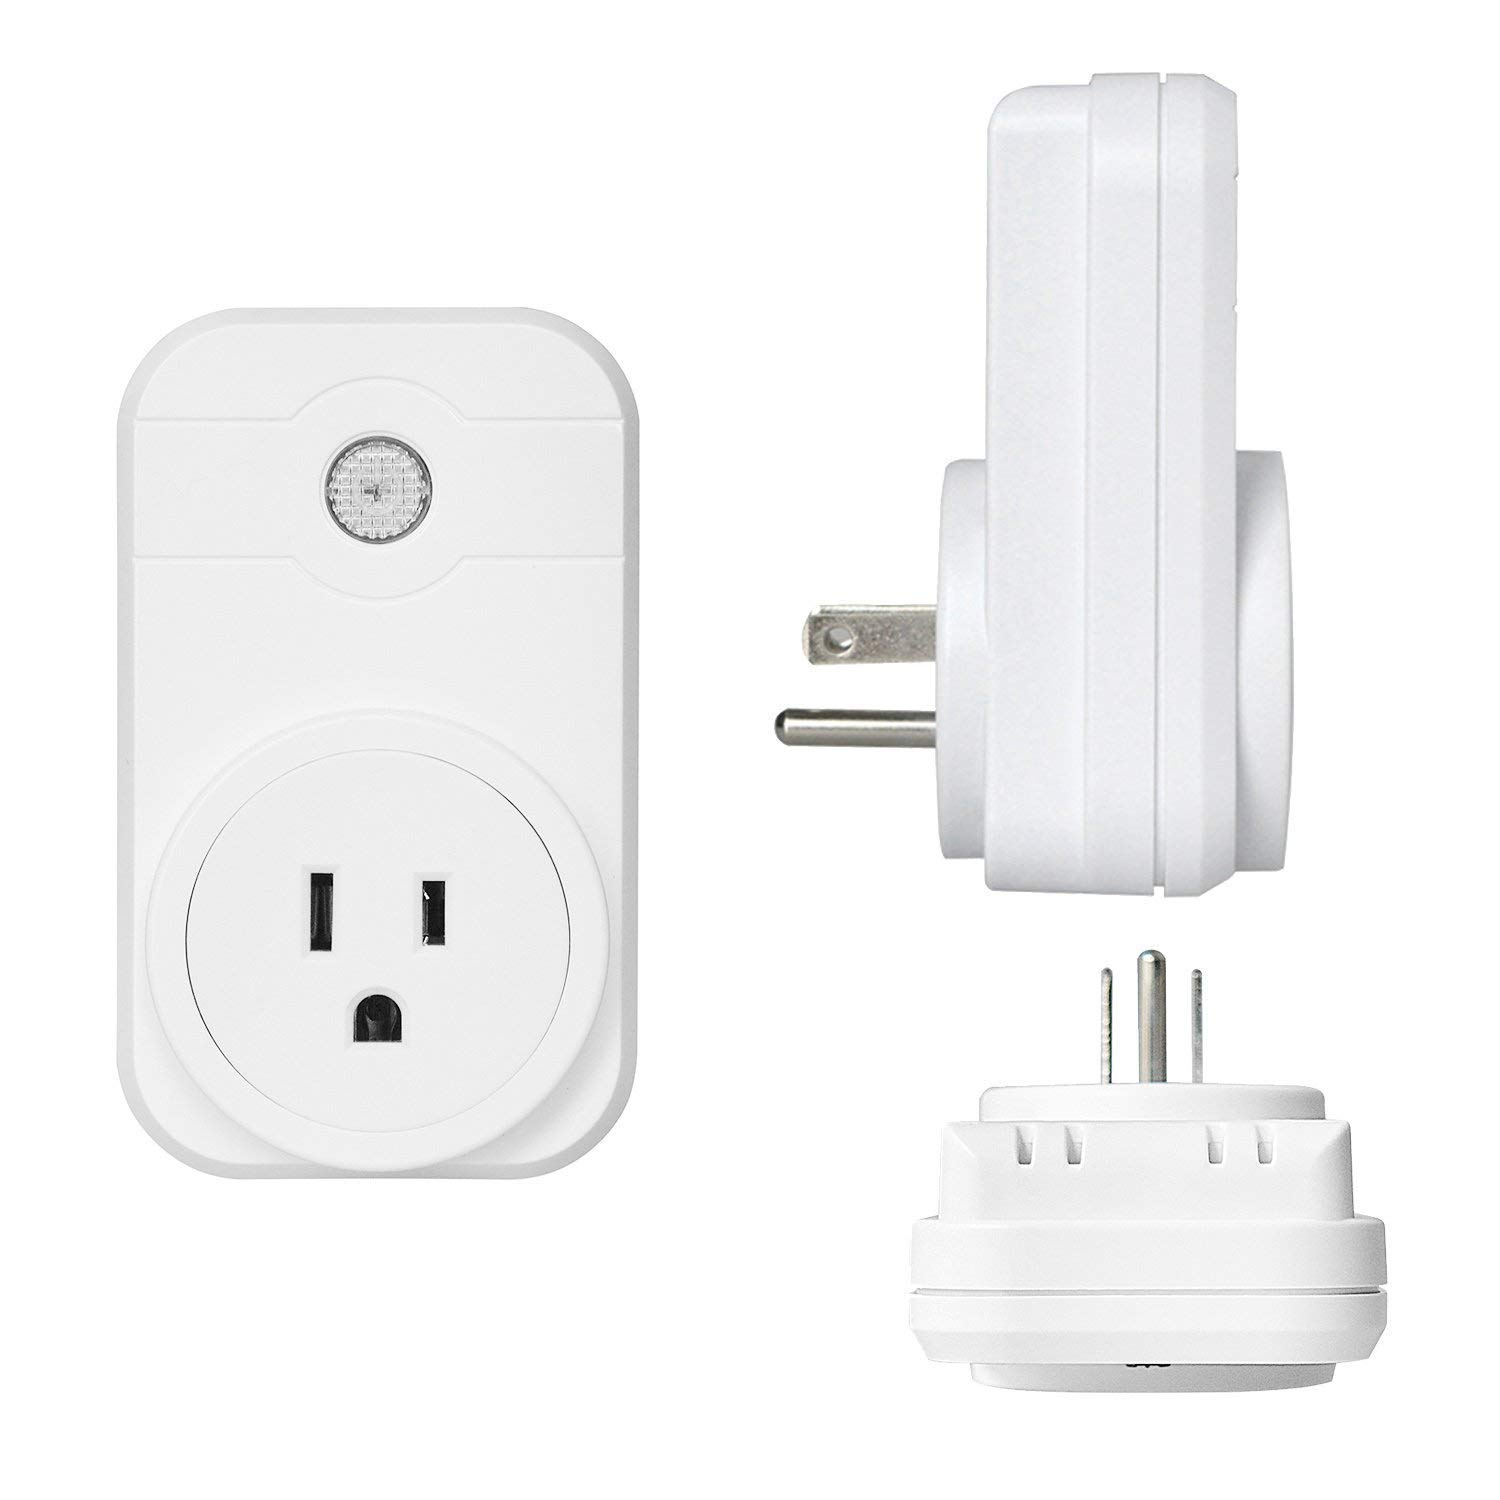 Annstory Smart Plug Compatible with Alexa Google Home IFTT, WiFi Socket Outlet with App Control your Devices from Anywhere wifi plugs (2 Pack)